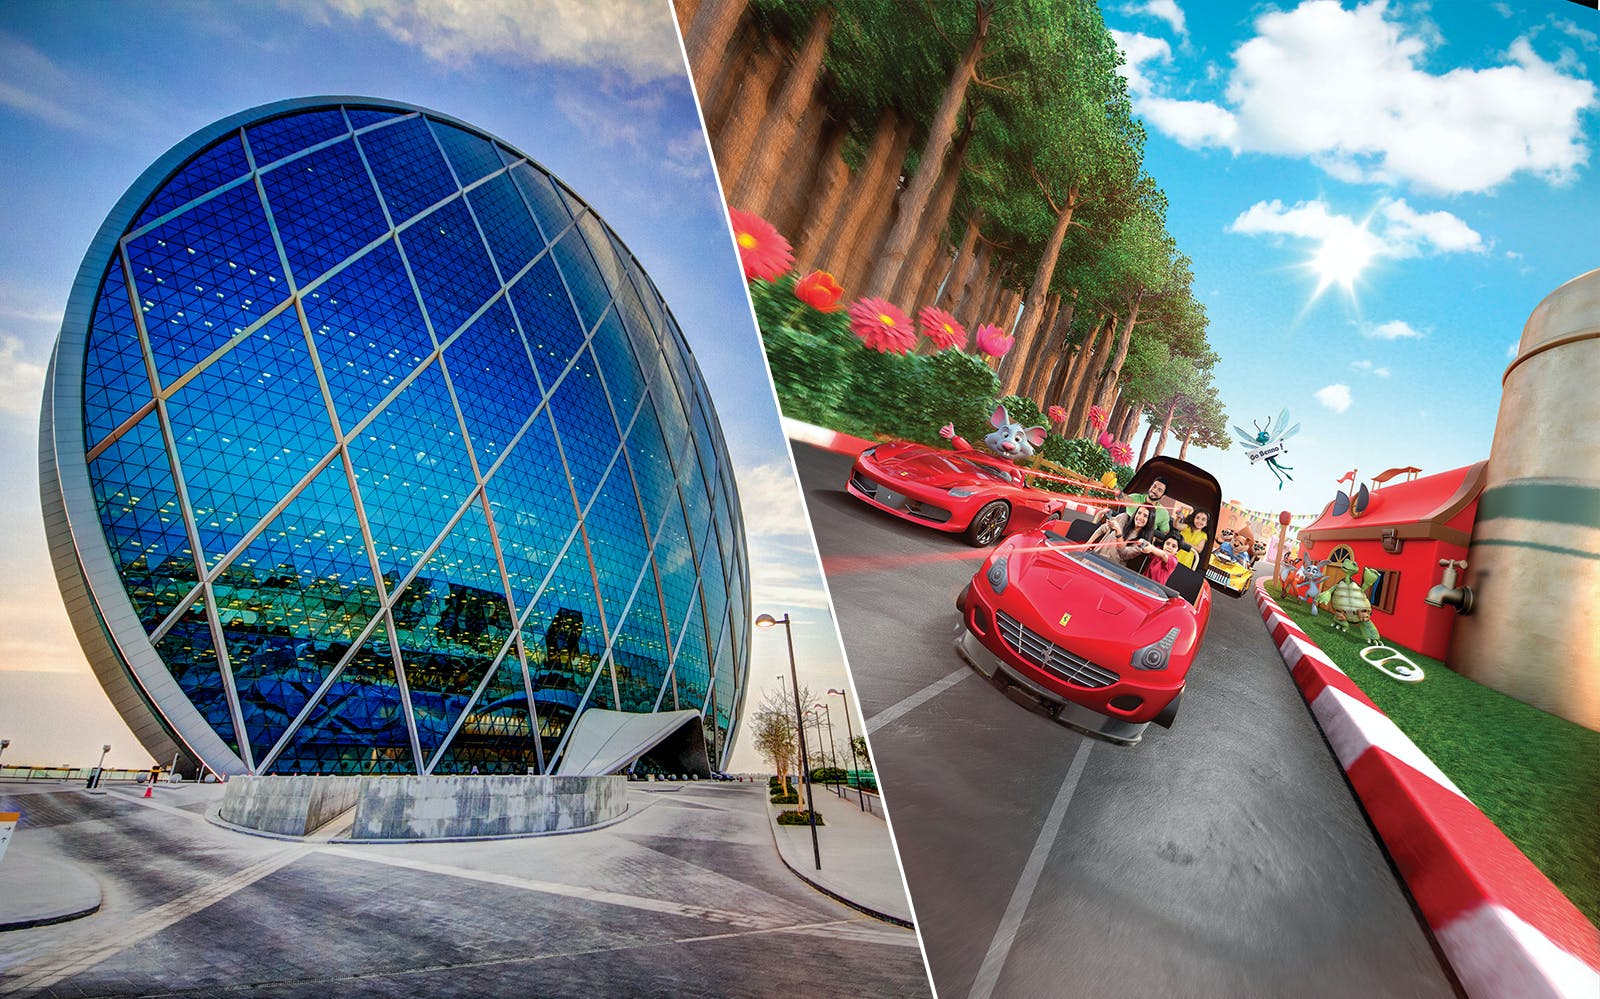 Abu Dhabi City Tour & Ferrari World Combo